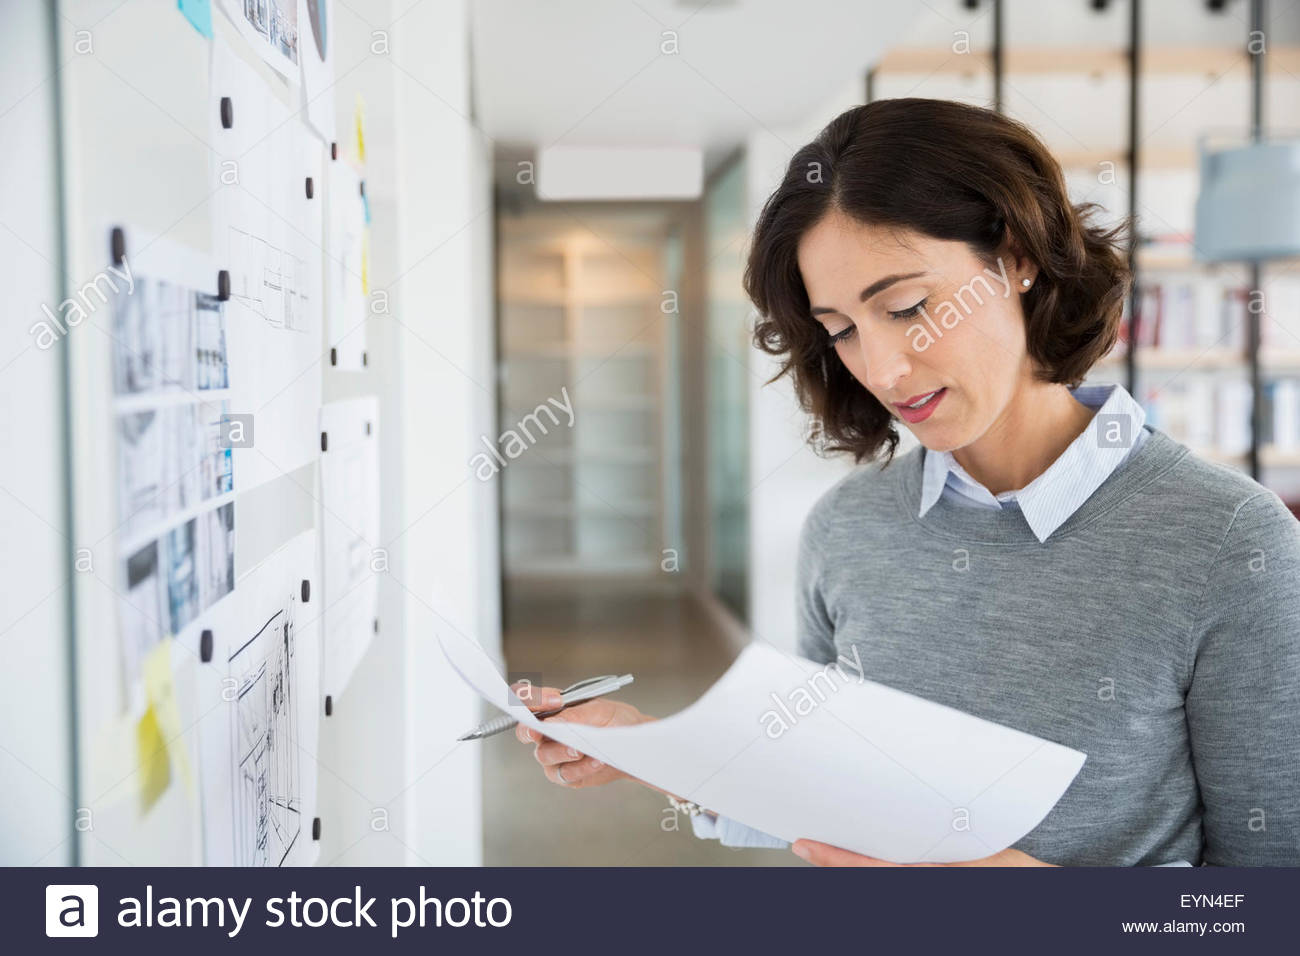 Architect reviewing blueprints at whiteboard in office - Stock Image